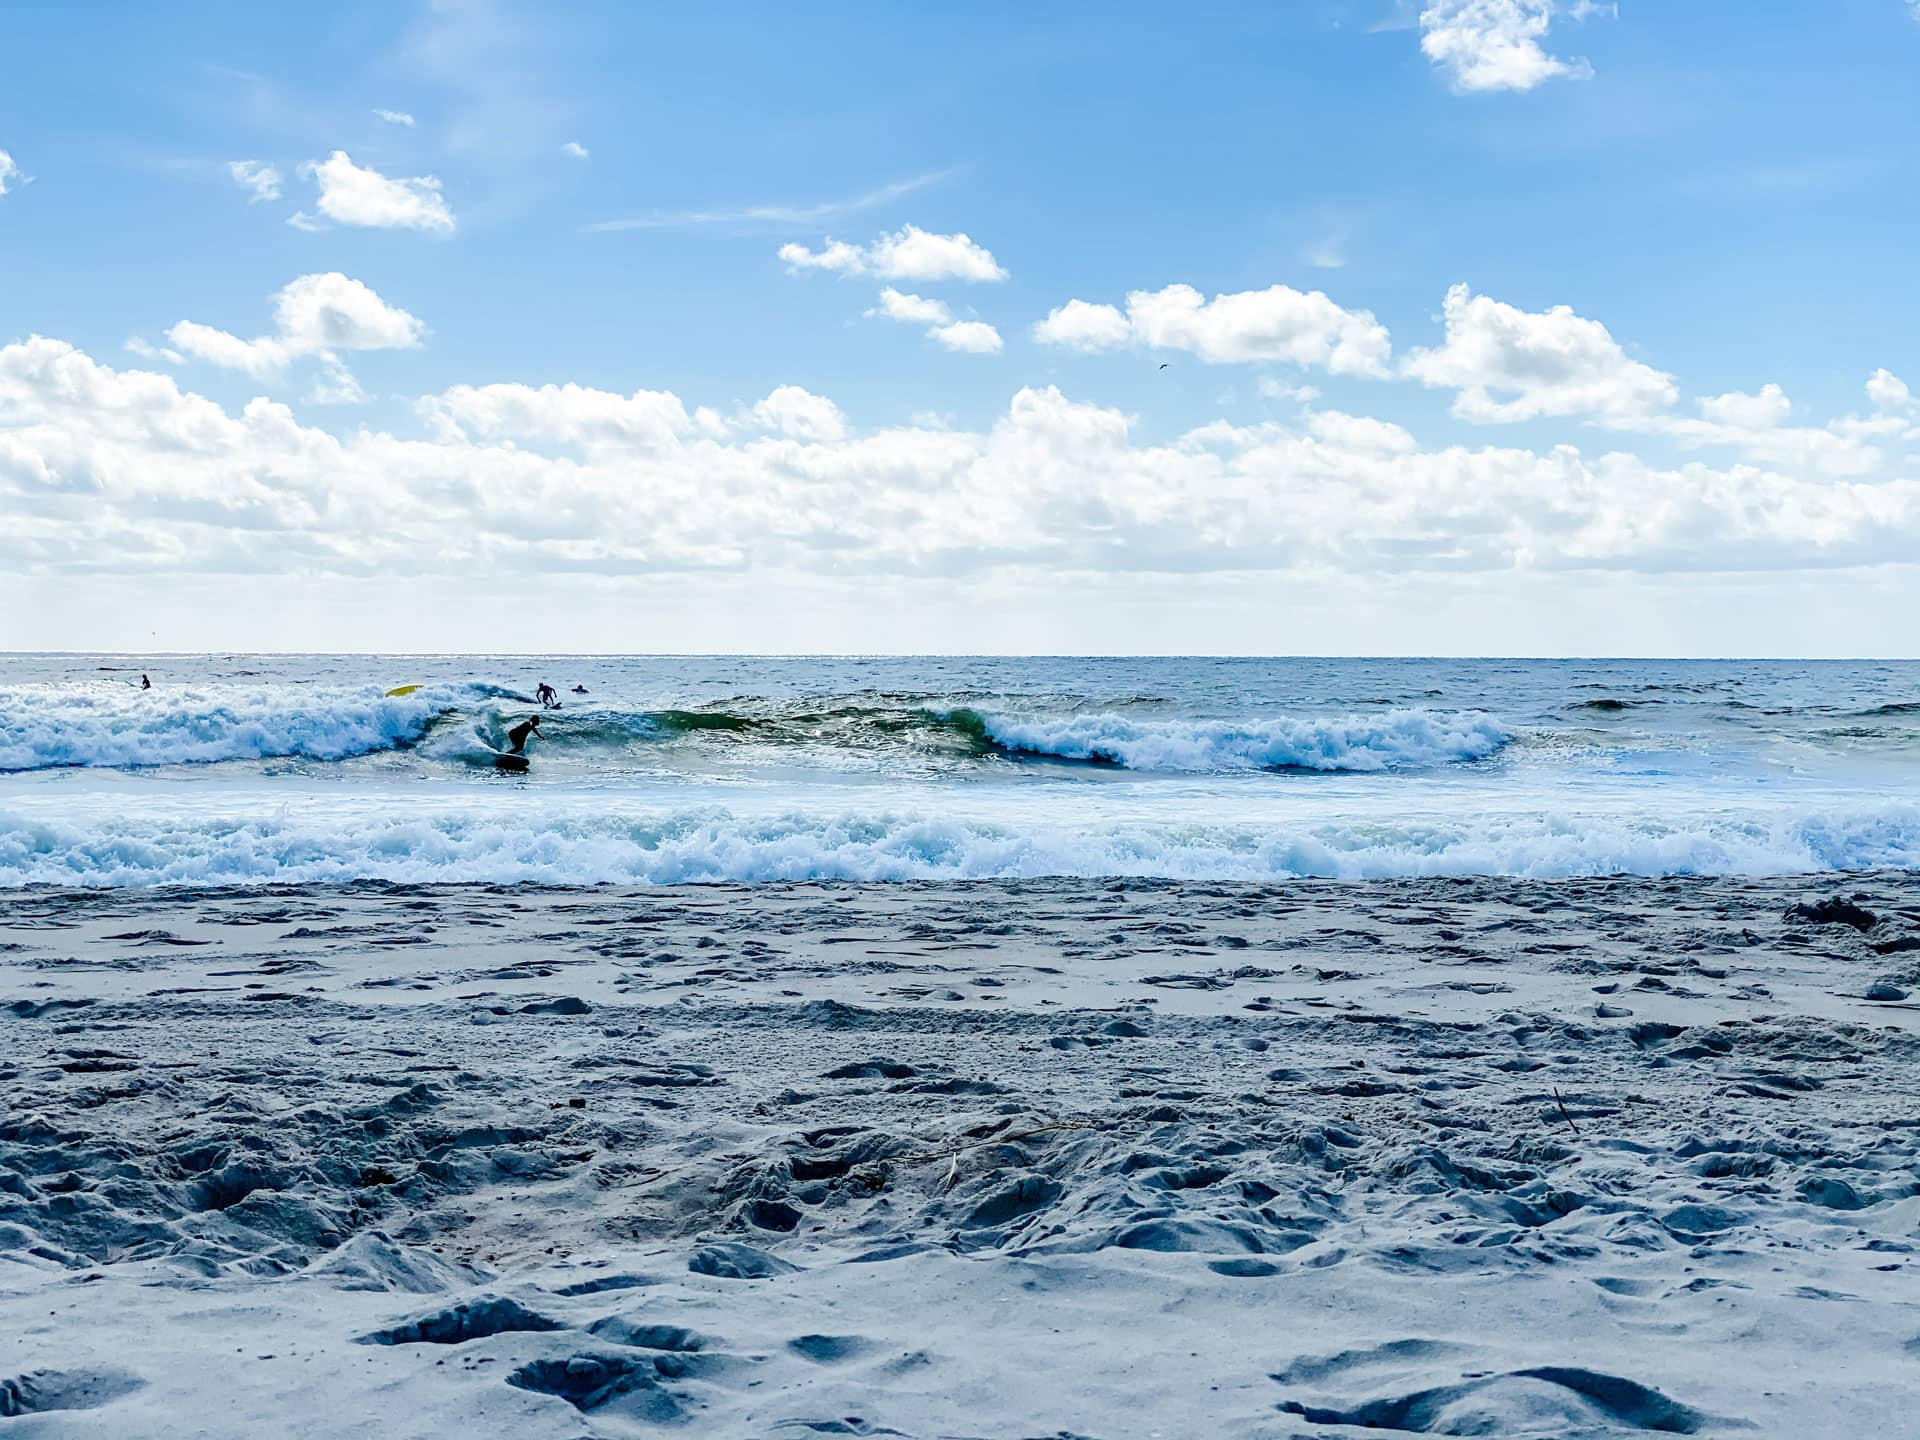 Lifestyle Blogger Annie Diamond shares her favorite surf spot in NYC. ^9th Street in The Rockaways! Only an hour from NYC.